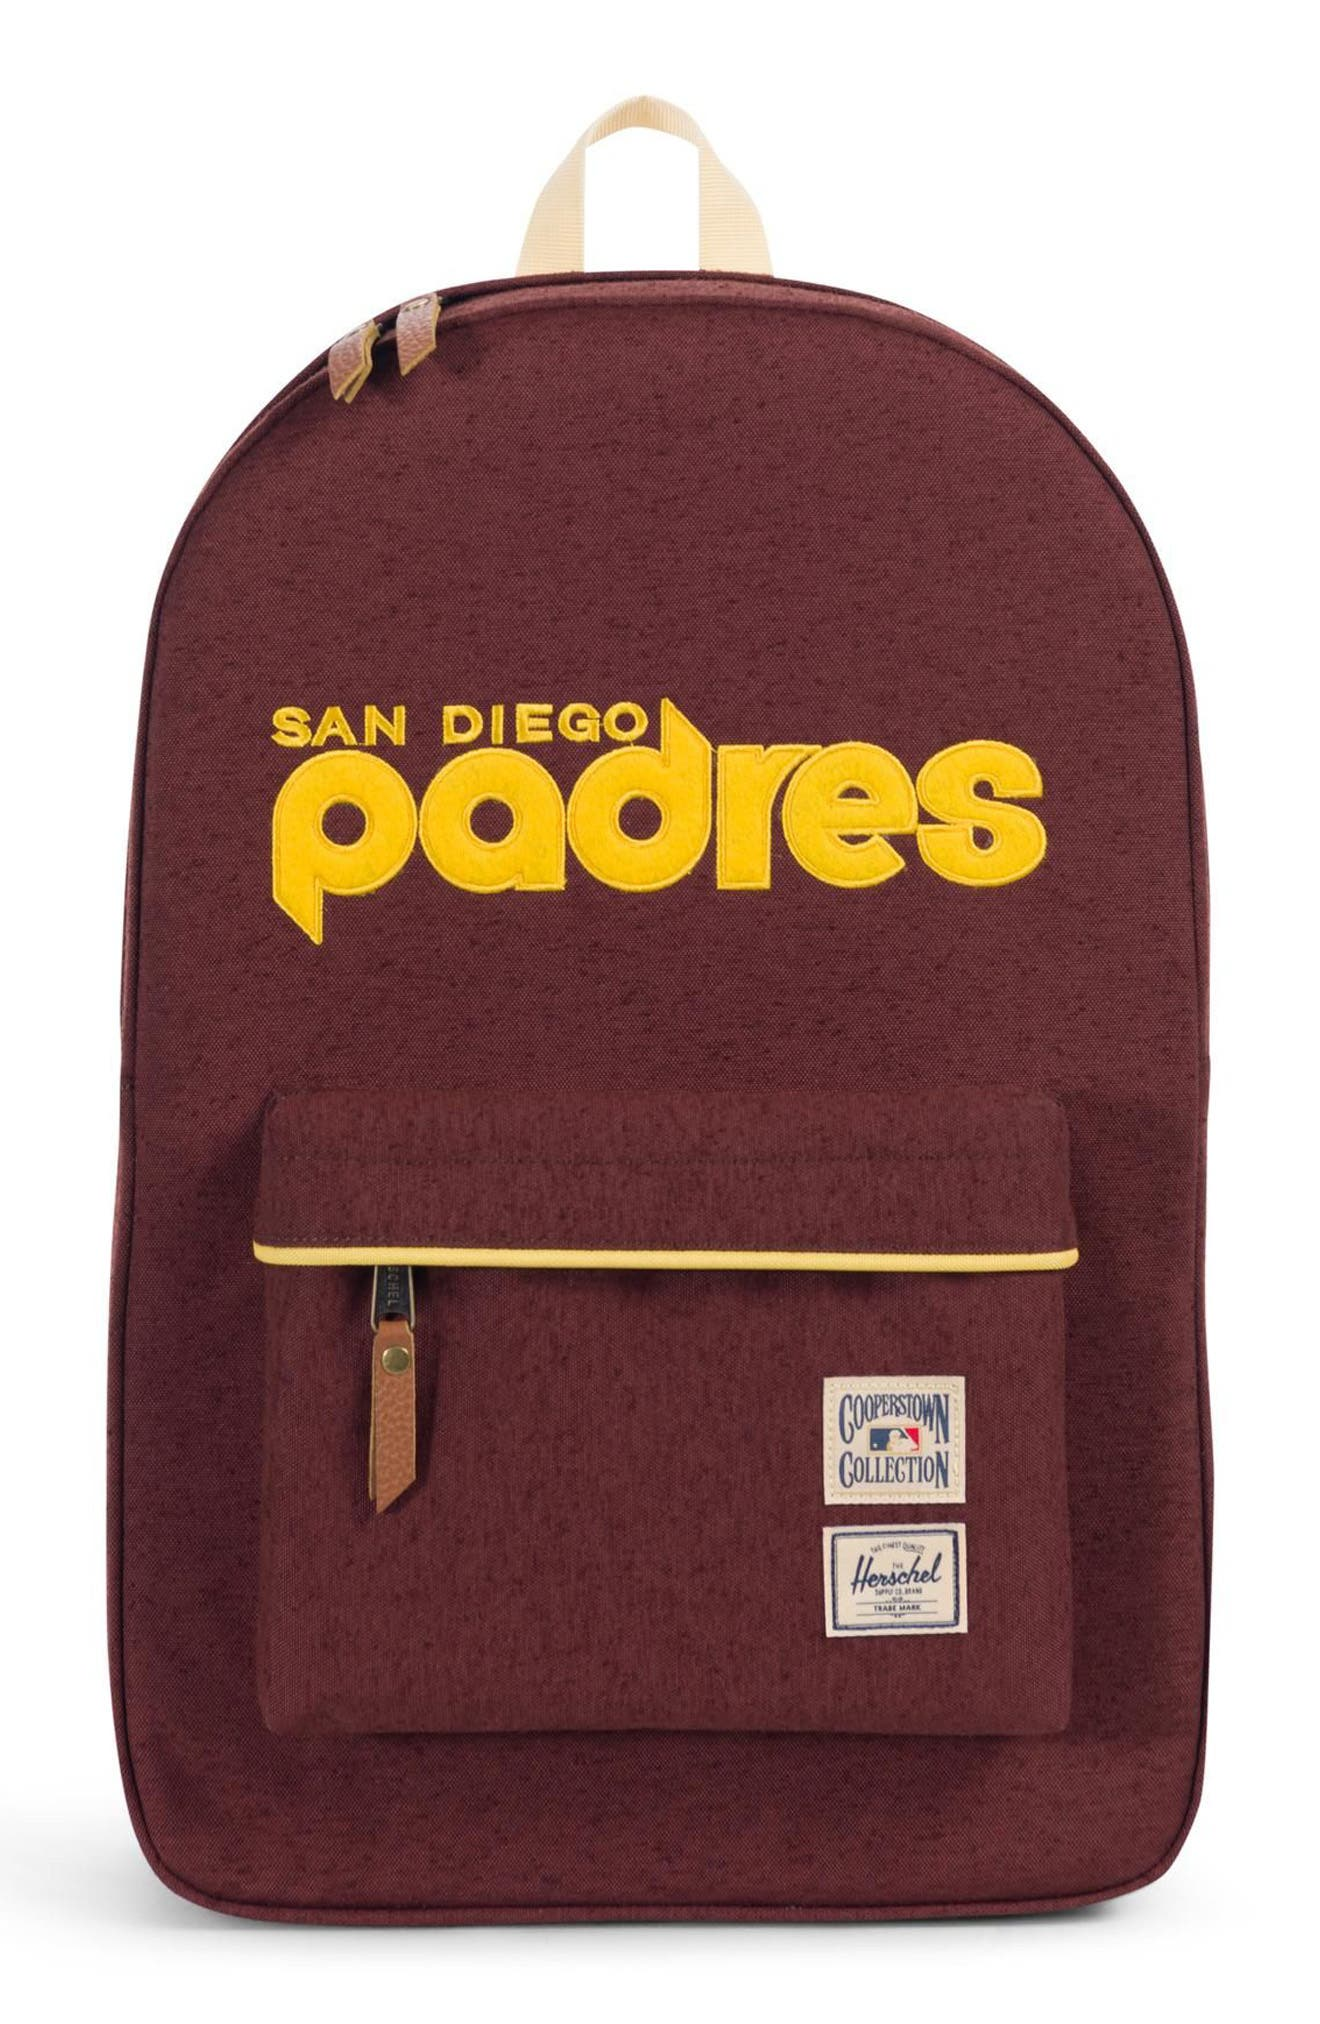 Heritage - MLB Cooperstown Collection Backpack,                         Main,                         color, SAN DIEGO PADRES